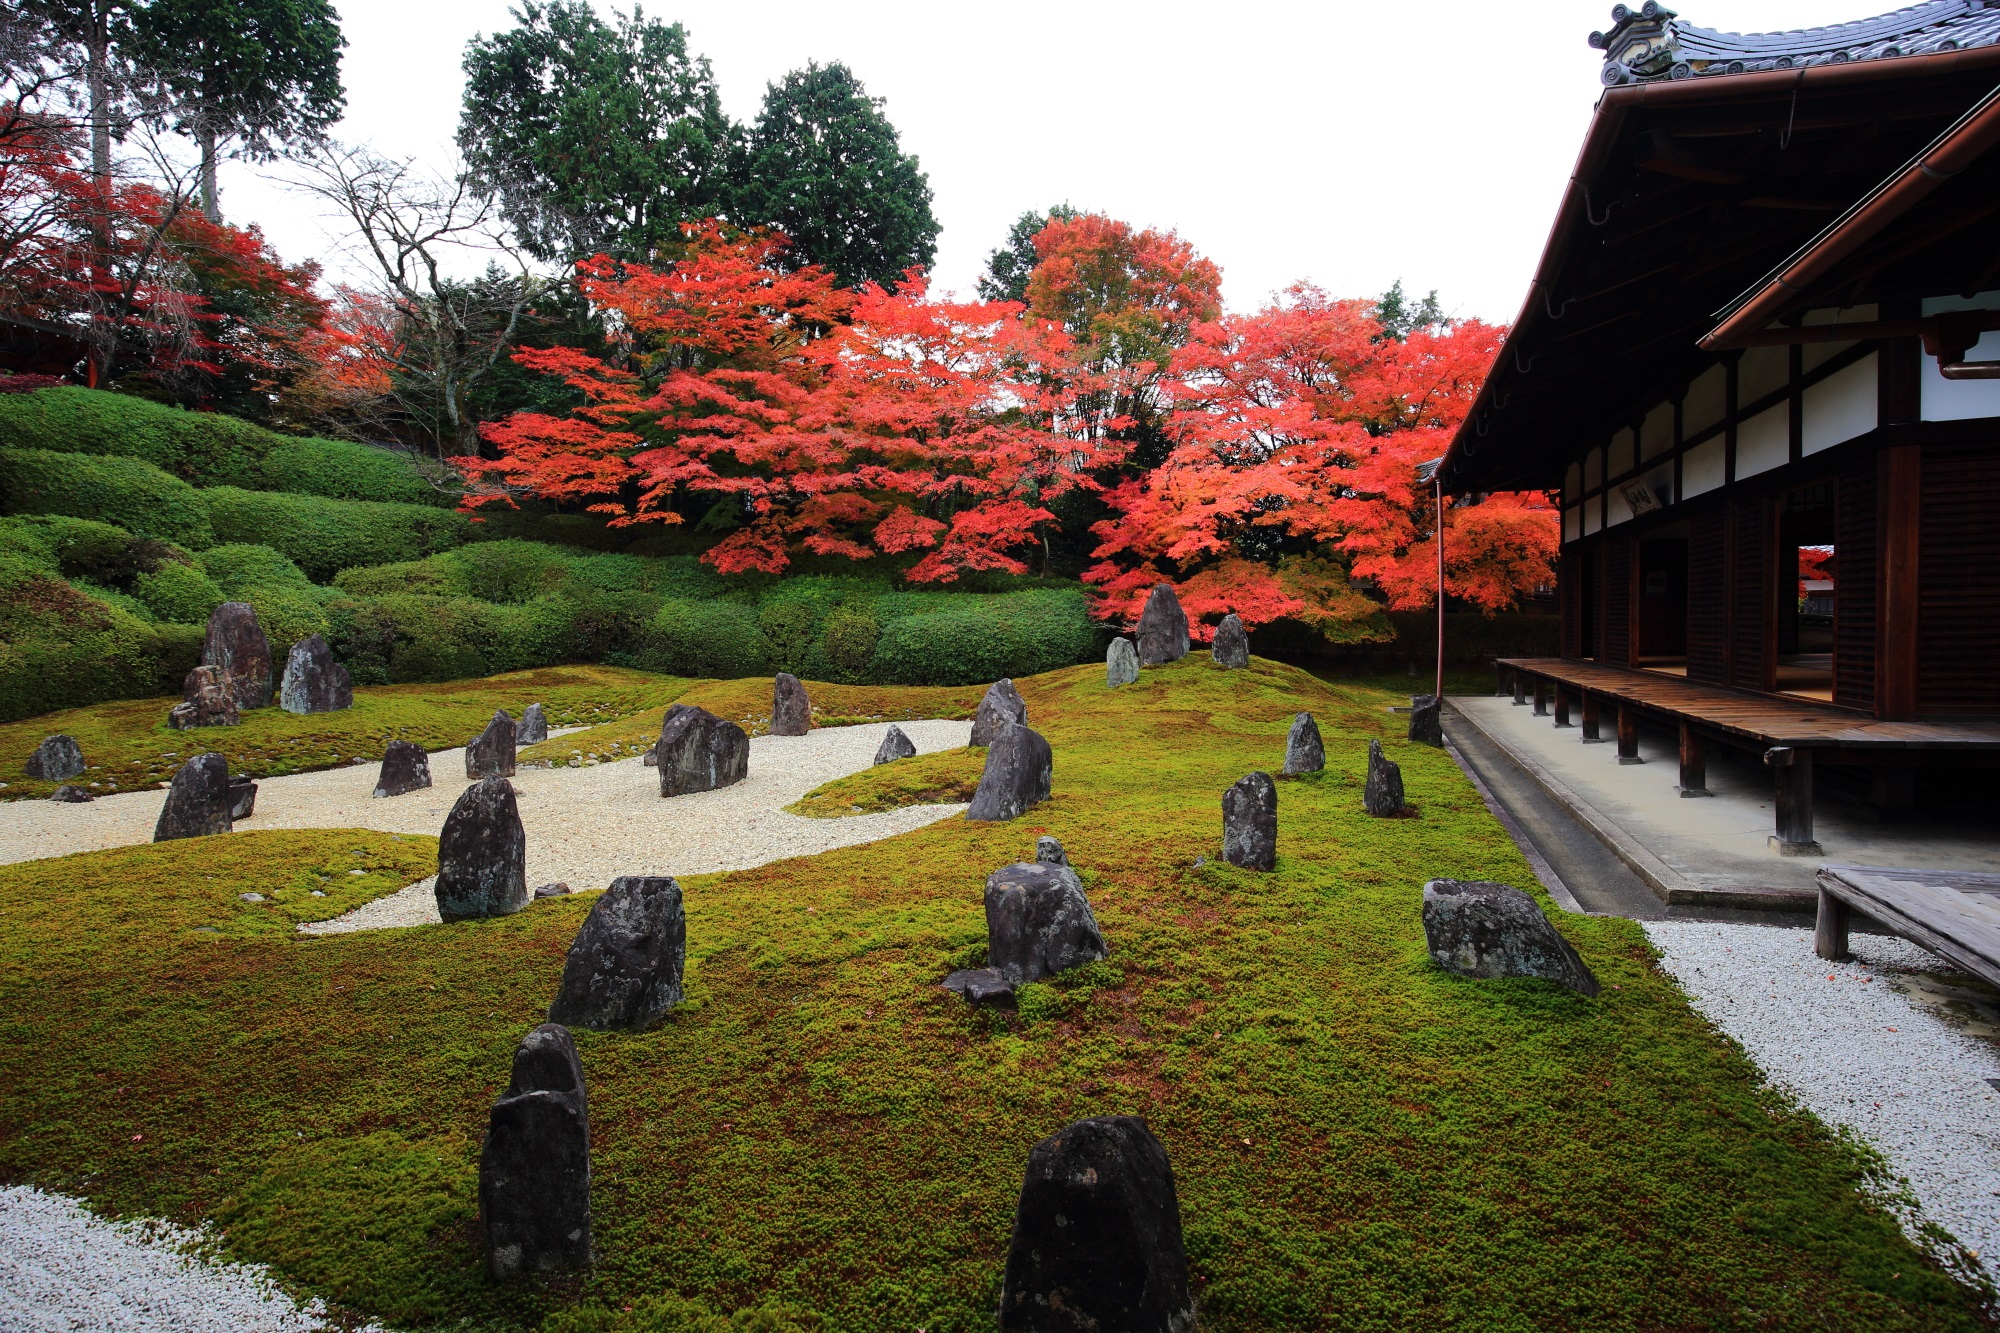 Hashin-Garden Komyo-in Temple Kyoto autumn leaves 見ごろ 鮮やか 岩 苔 白砂